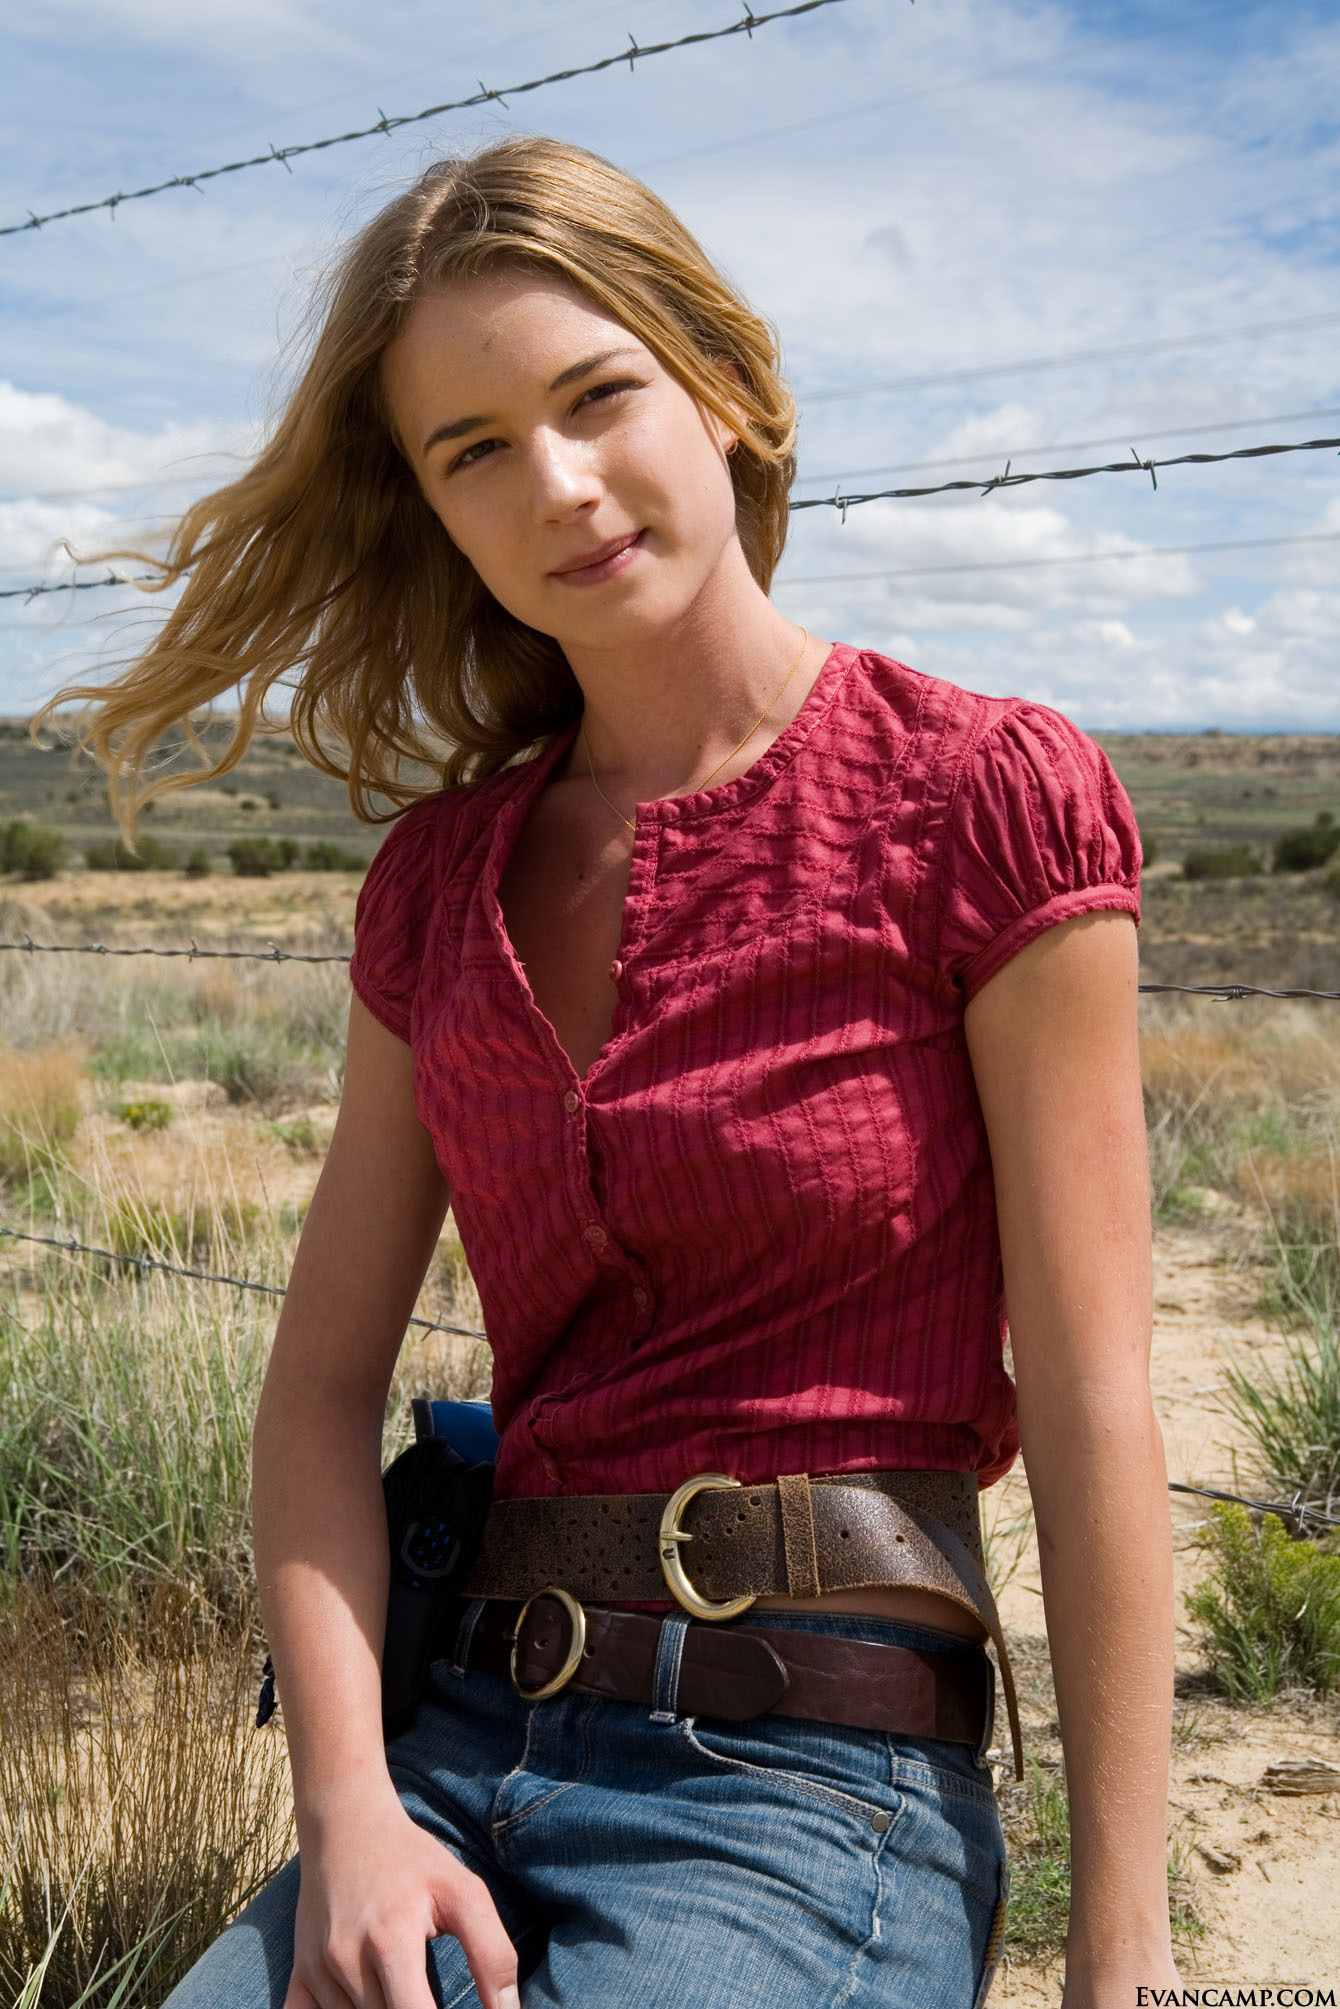 Summercamp ☼ CHaraktere -Carriers-Promo-Photos-emily-vancamp-7138513-1340-2009